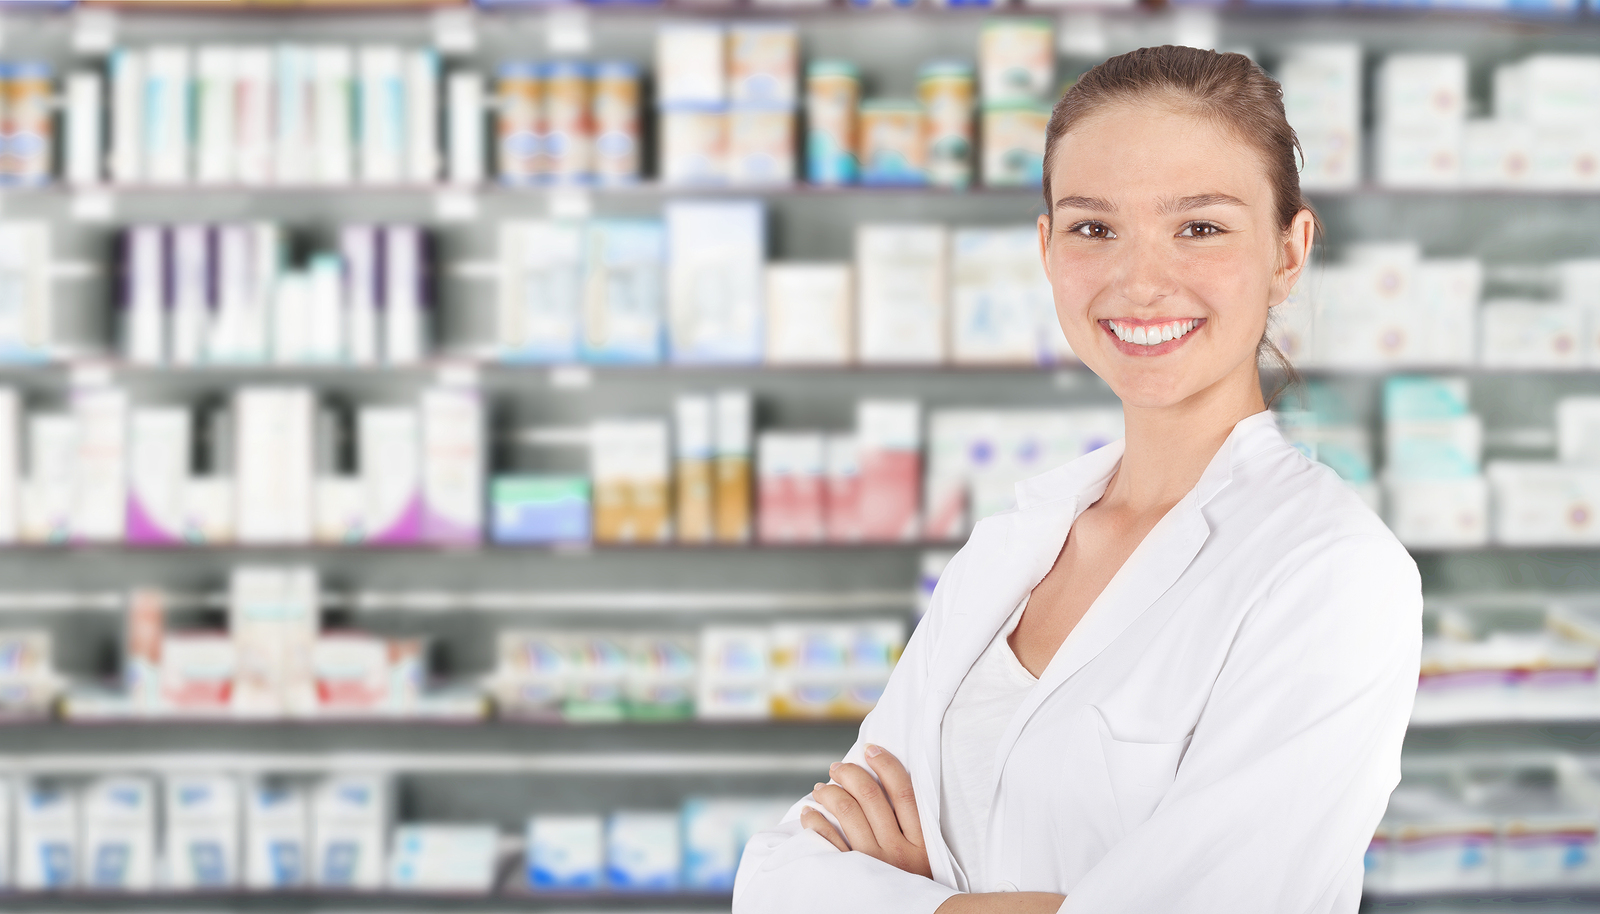 Free test prep for the ptcb pharmacy technician certification exam student taking the ptcb pharmacy technician certification exam xflitez Choice Image